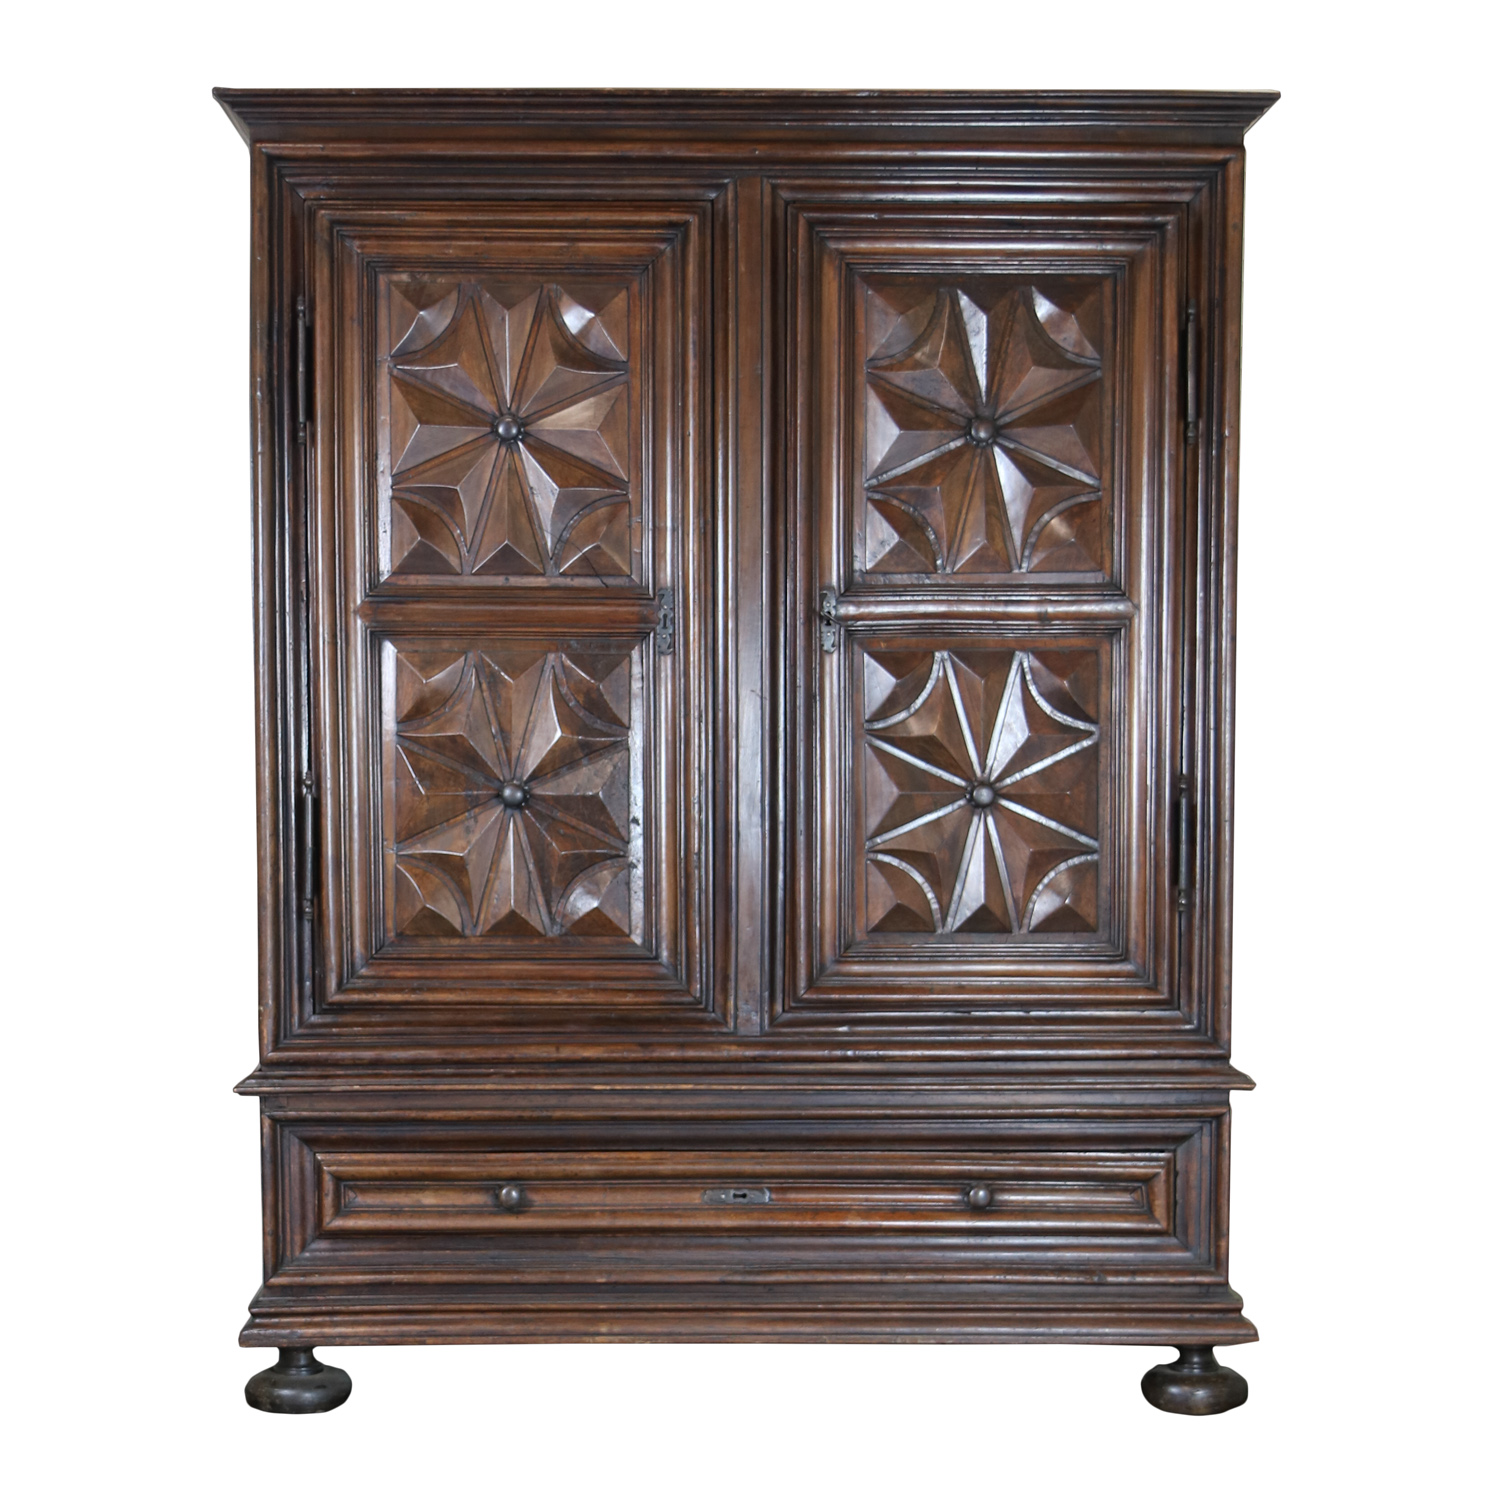 louis xiii period carved walnut armoire ph 415 355 1690. Black Bedroom Furniture Sets. Home Design Ideas